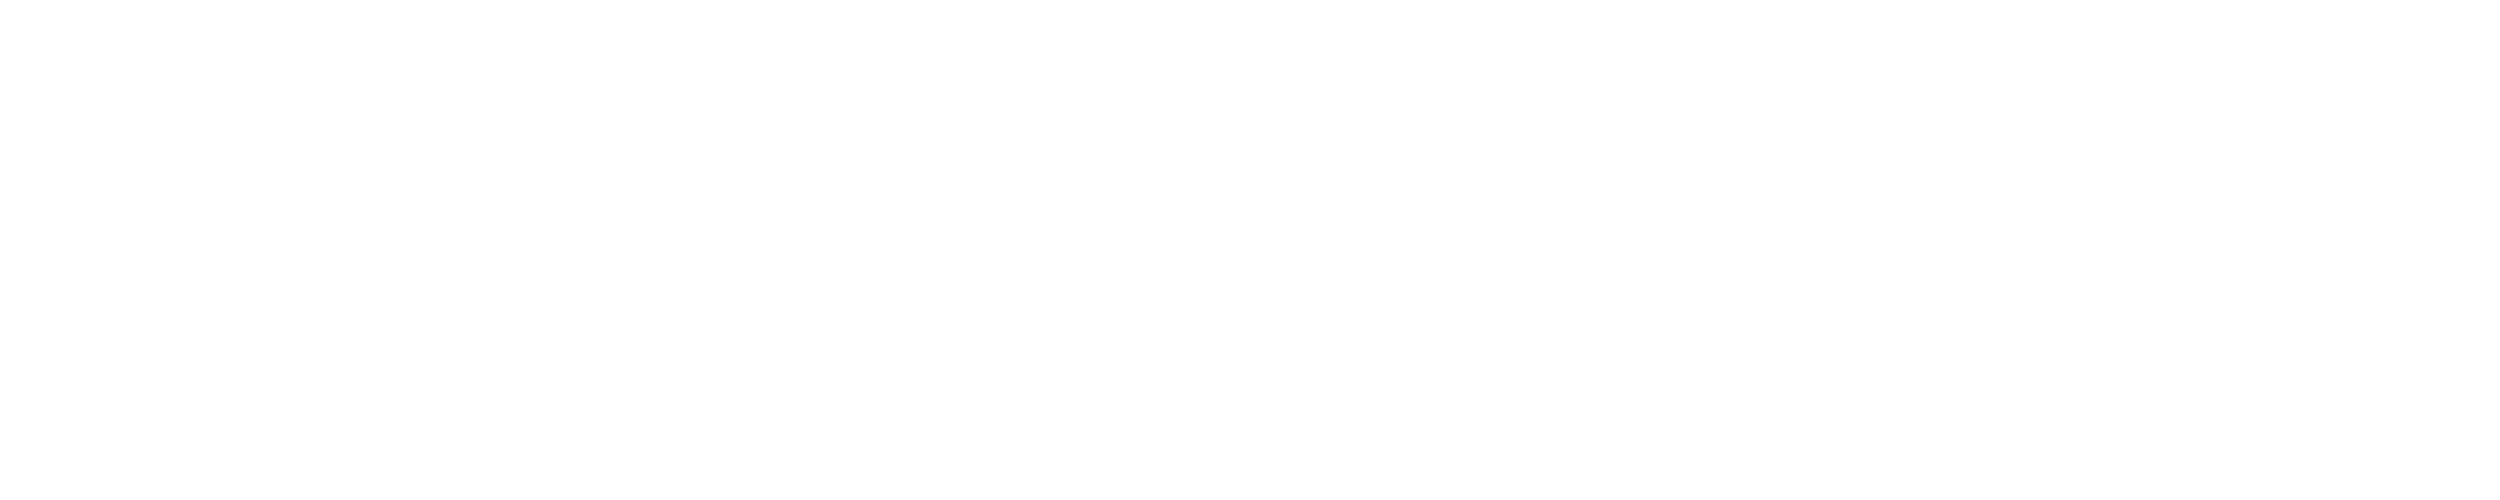 Share Your Musical Talents.png